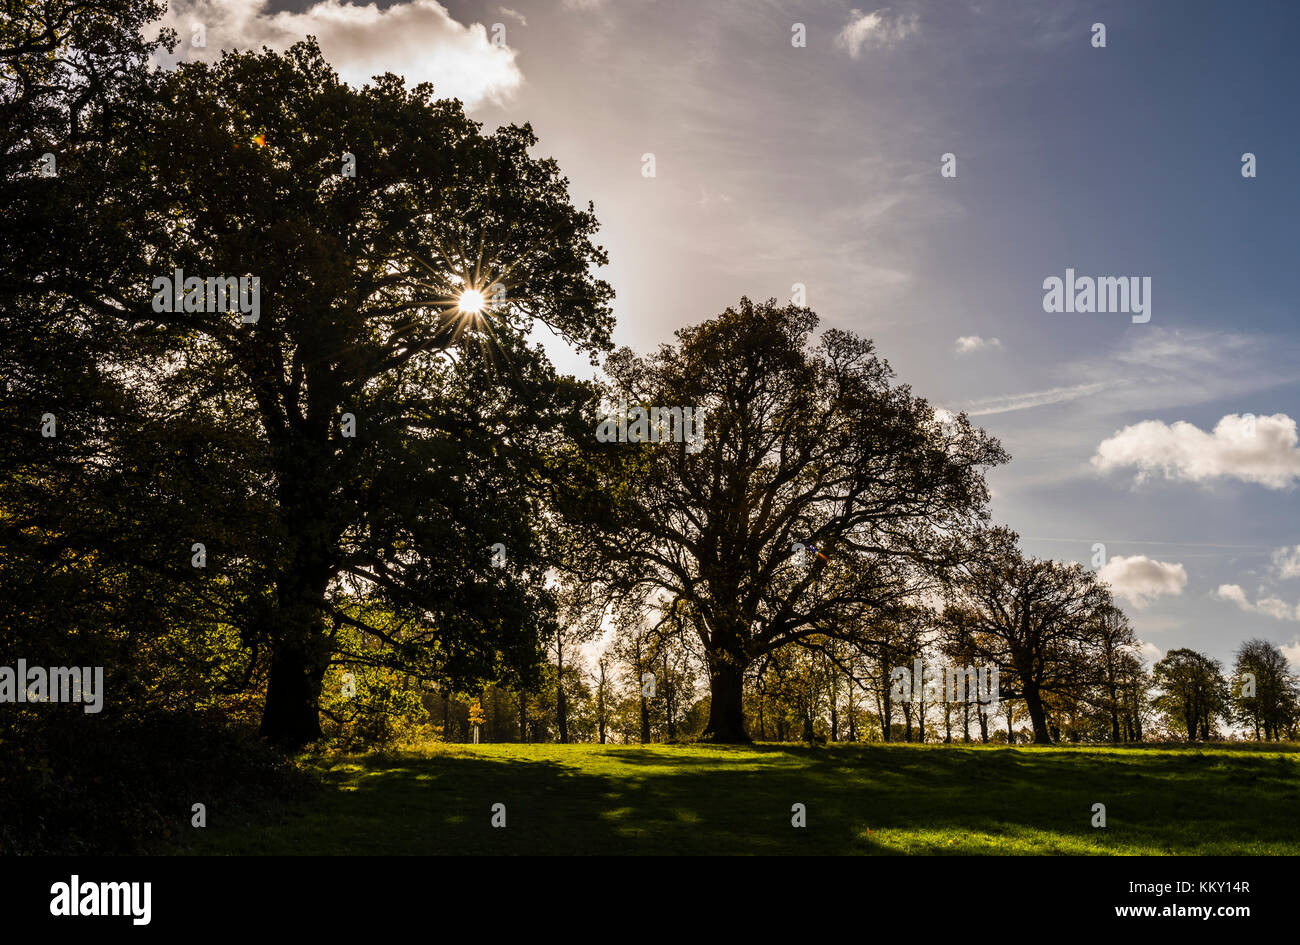 Rising sun behind trees at Trent Park in north London, UK - Stock Image